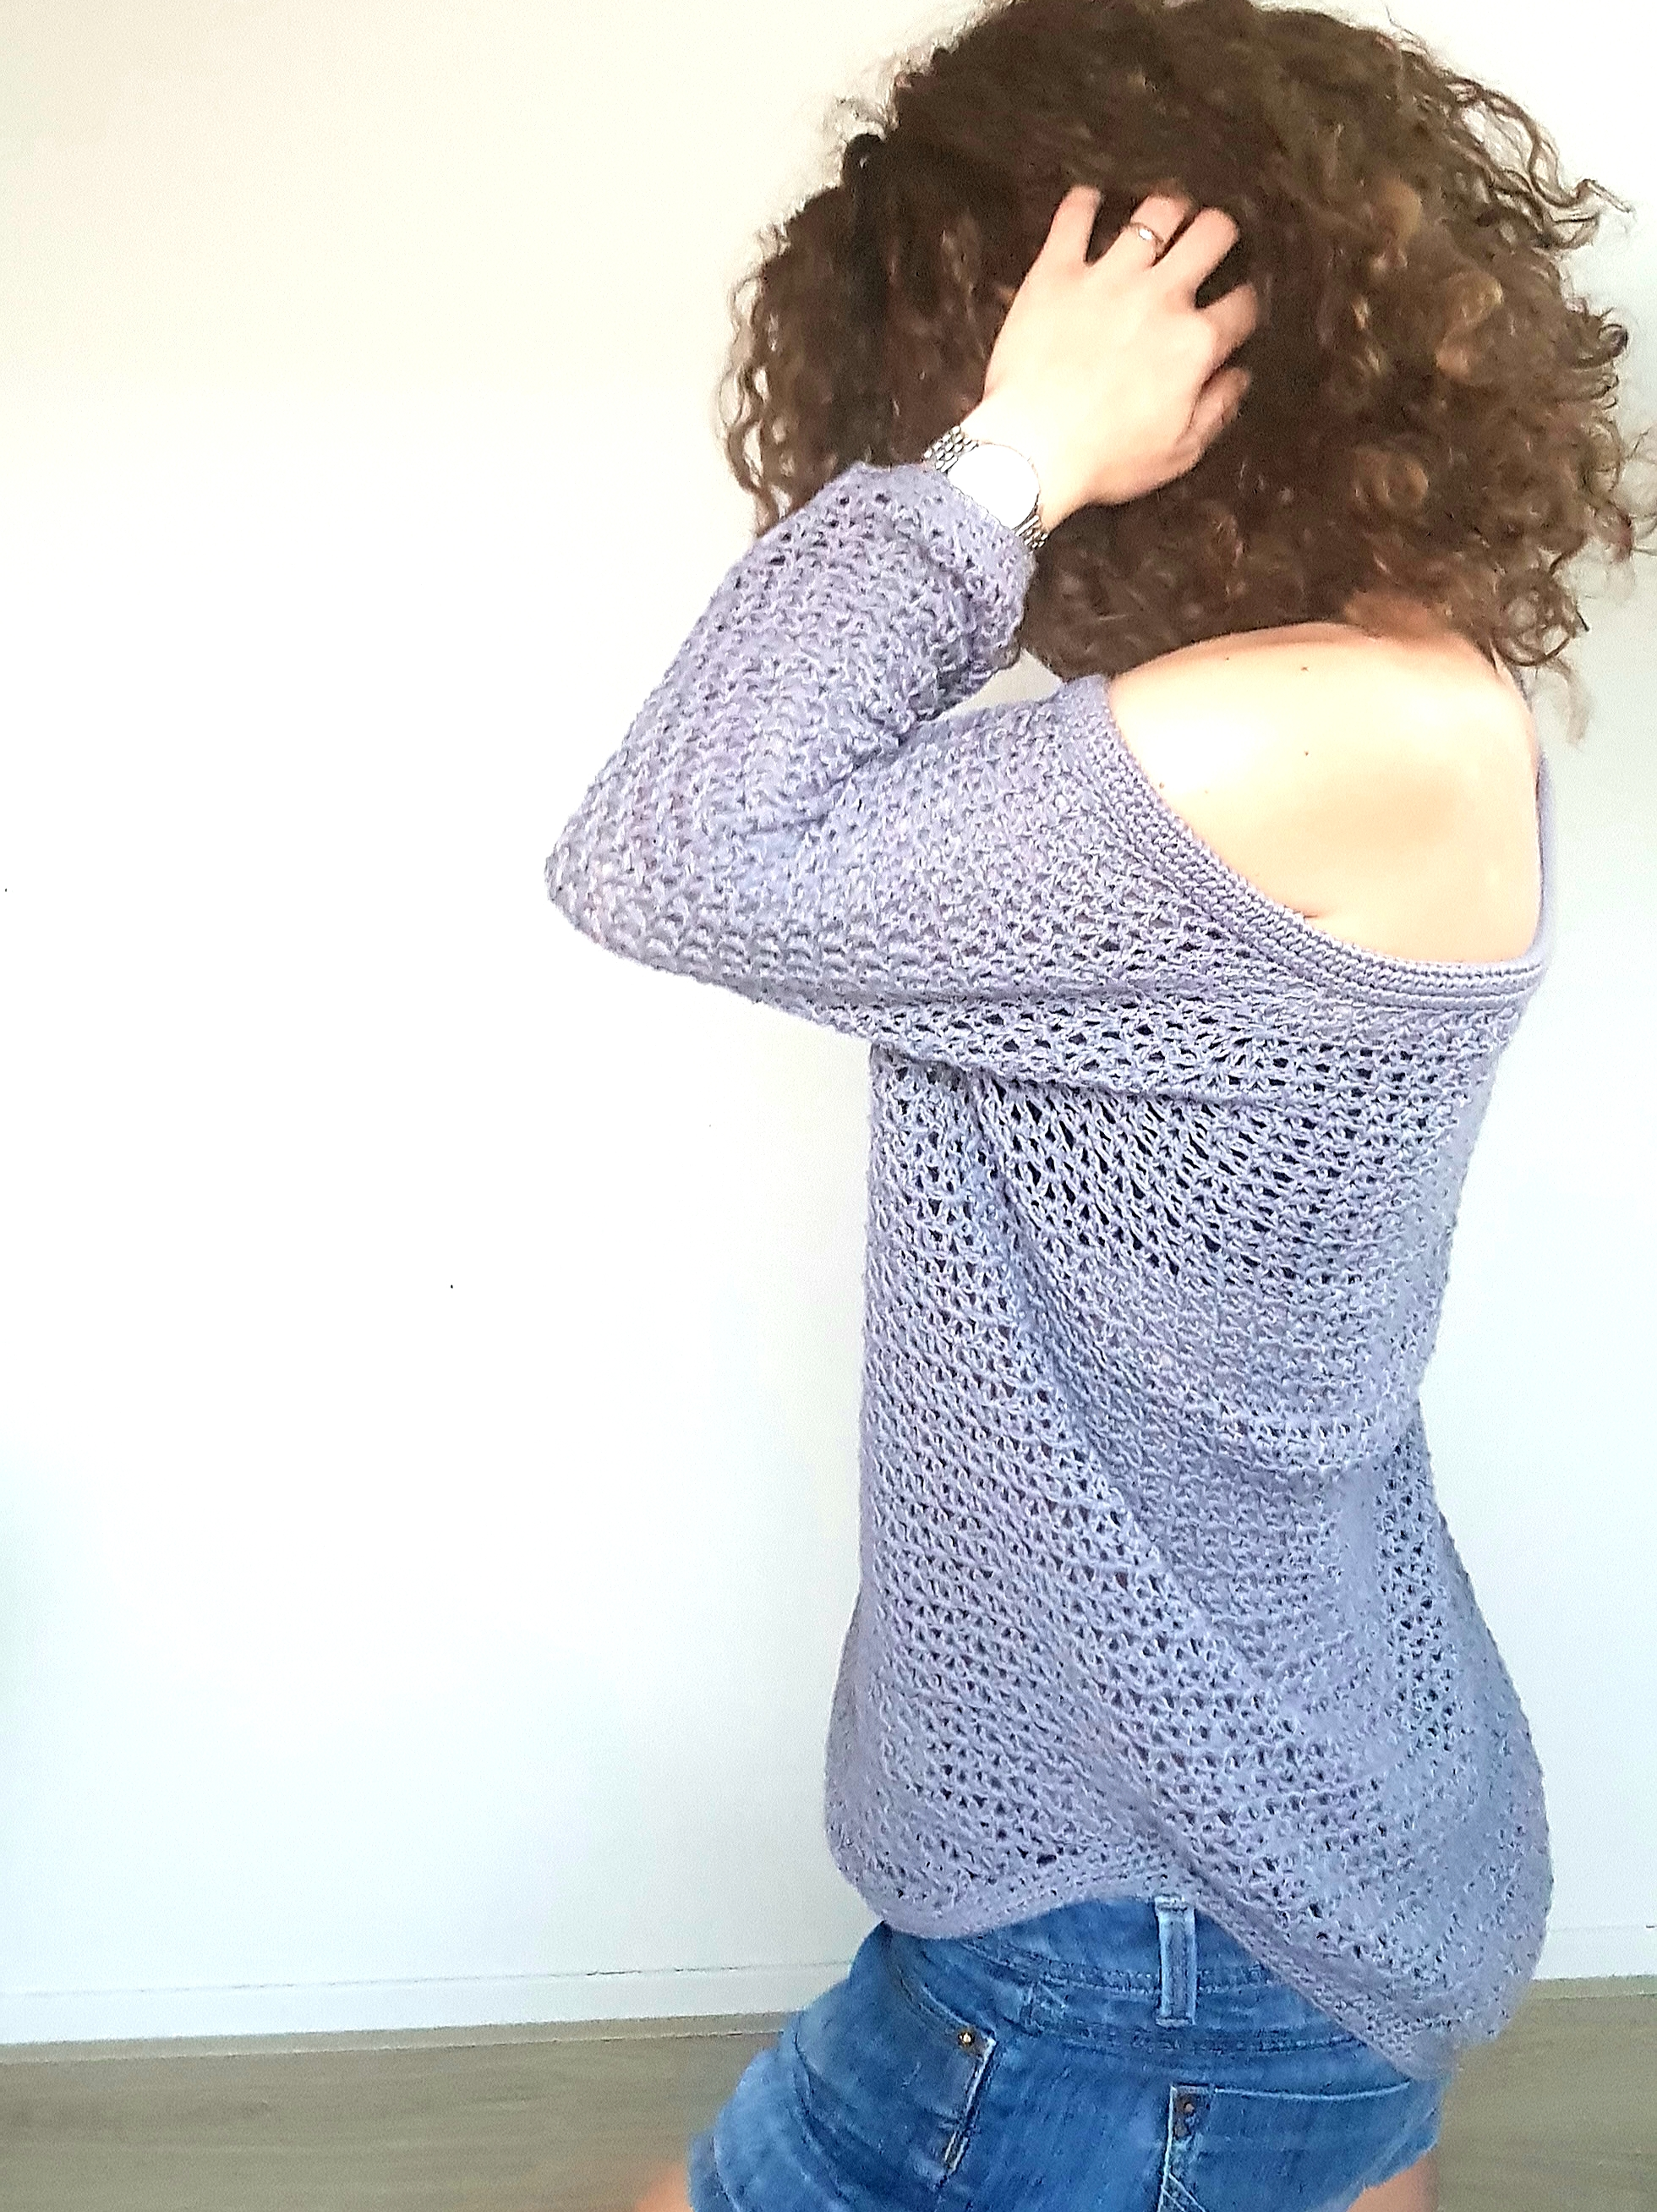 leevanda Shirt. Free Pattern & Tutorial